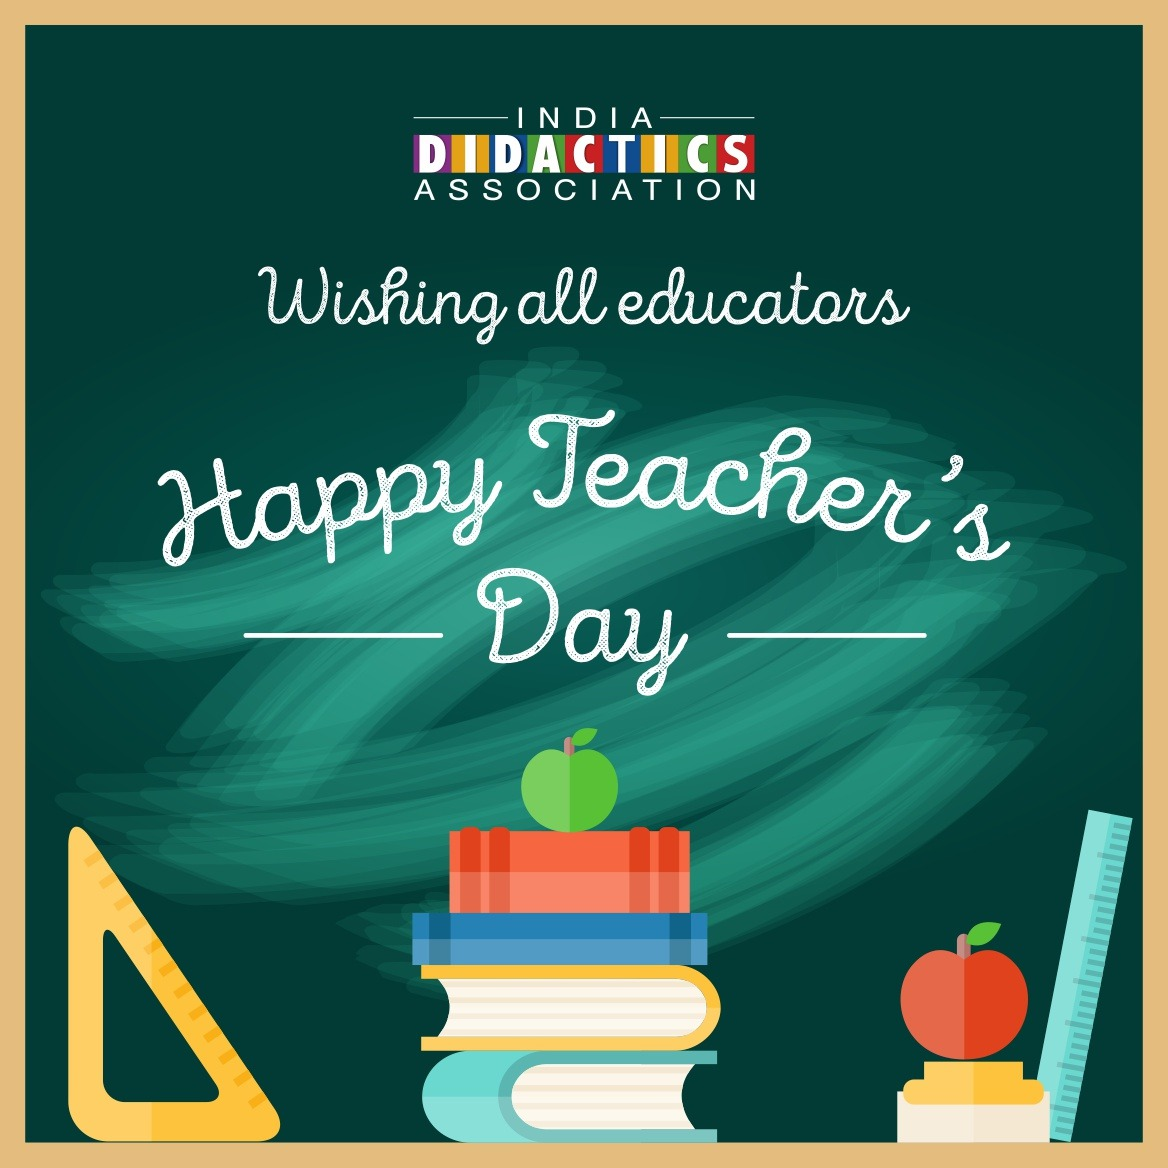 happy teacher's day картинки